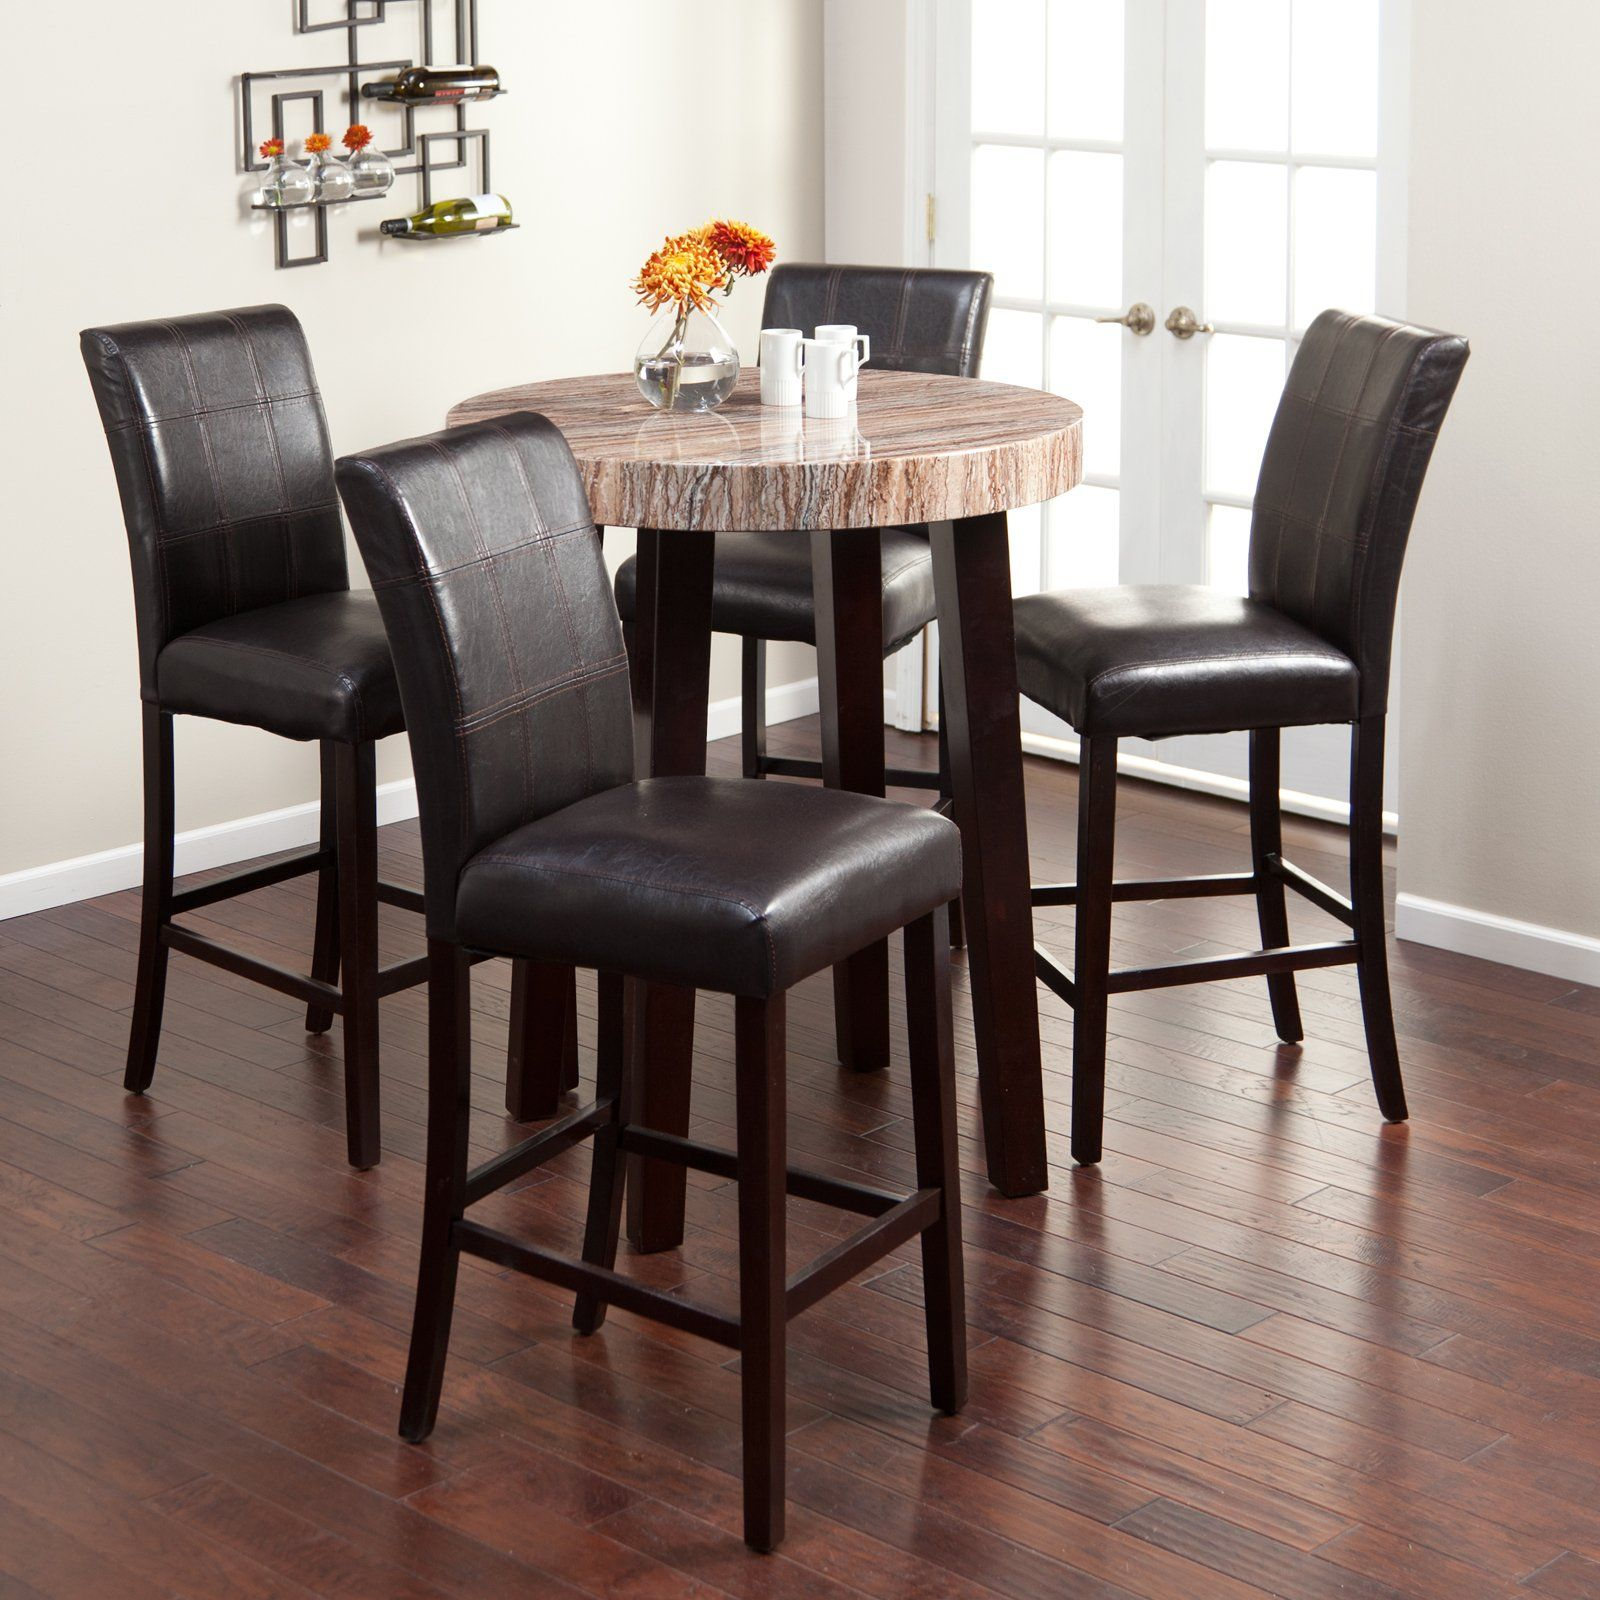 Carmine Round Bar-Height Table Set $599.99 & Have to have it. Carmine Round Bar-Height Table Set $599.99 | New ...